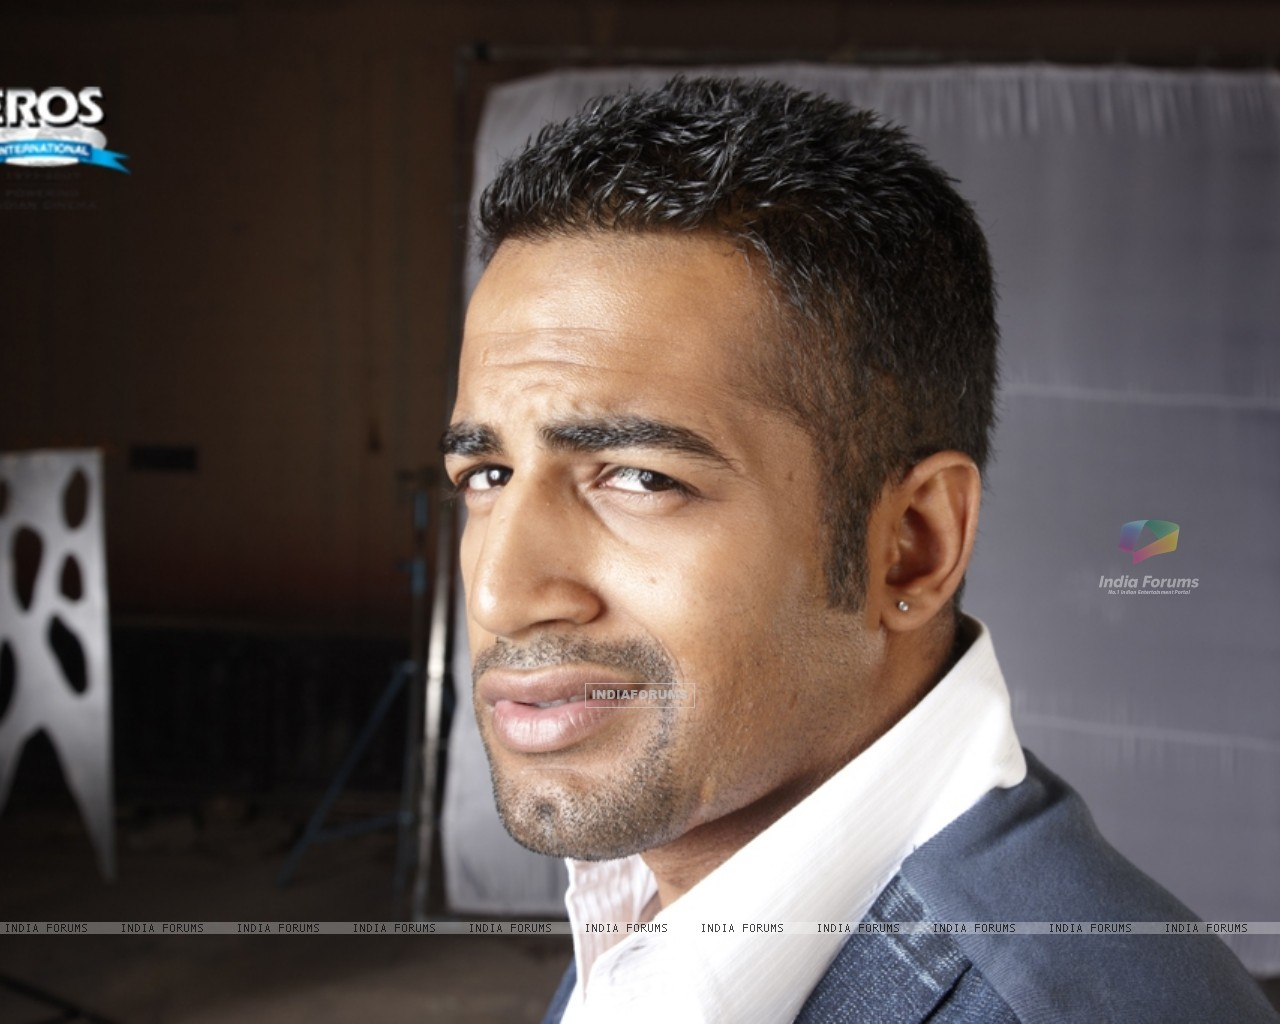 model, Upen Patel, actor, bollywood, sexy indian, man, black women, dating, man candy, relationship, options, diversity, love, BWE, blackistan, culture, race,